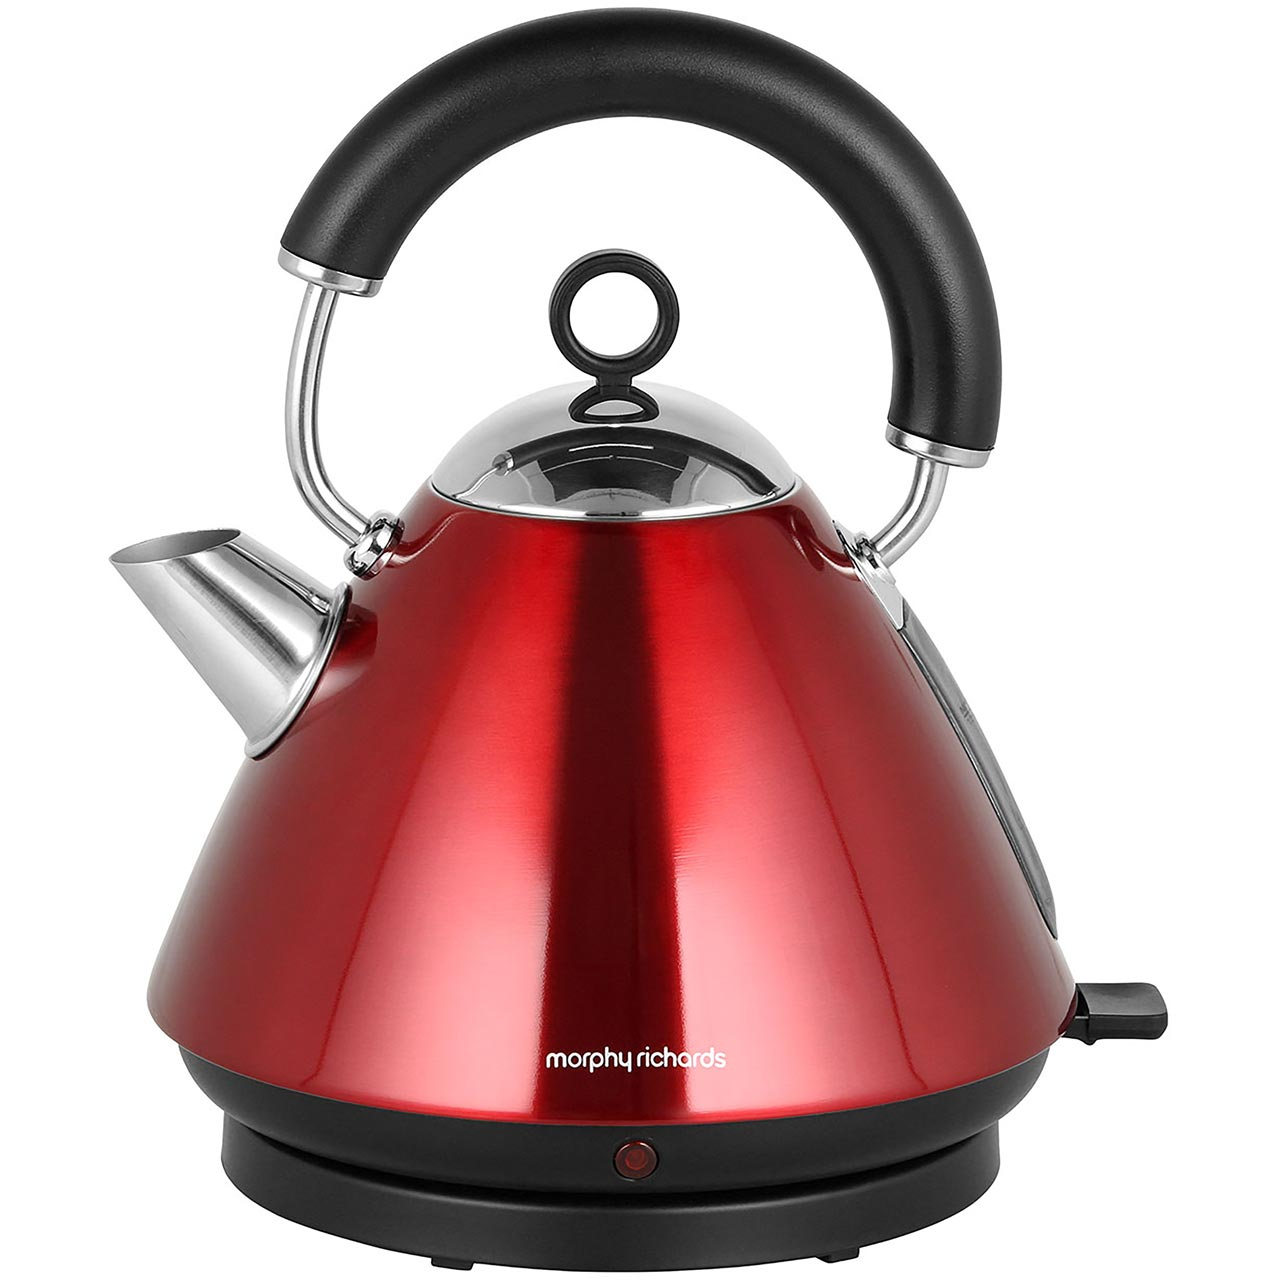 Morphy Richards Red Kitchen Accessories: Morphy Richards 102029 Accents Red Traditional Cordless